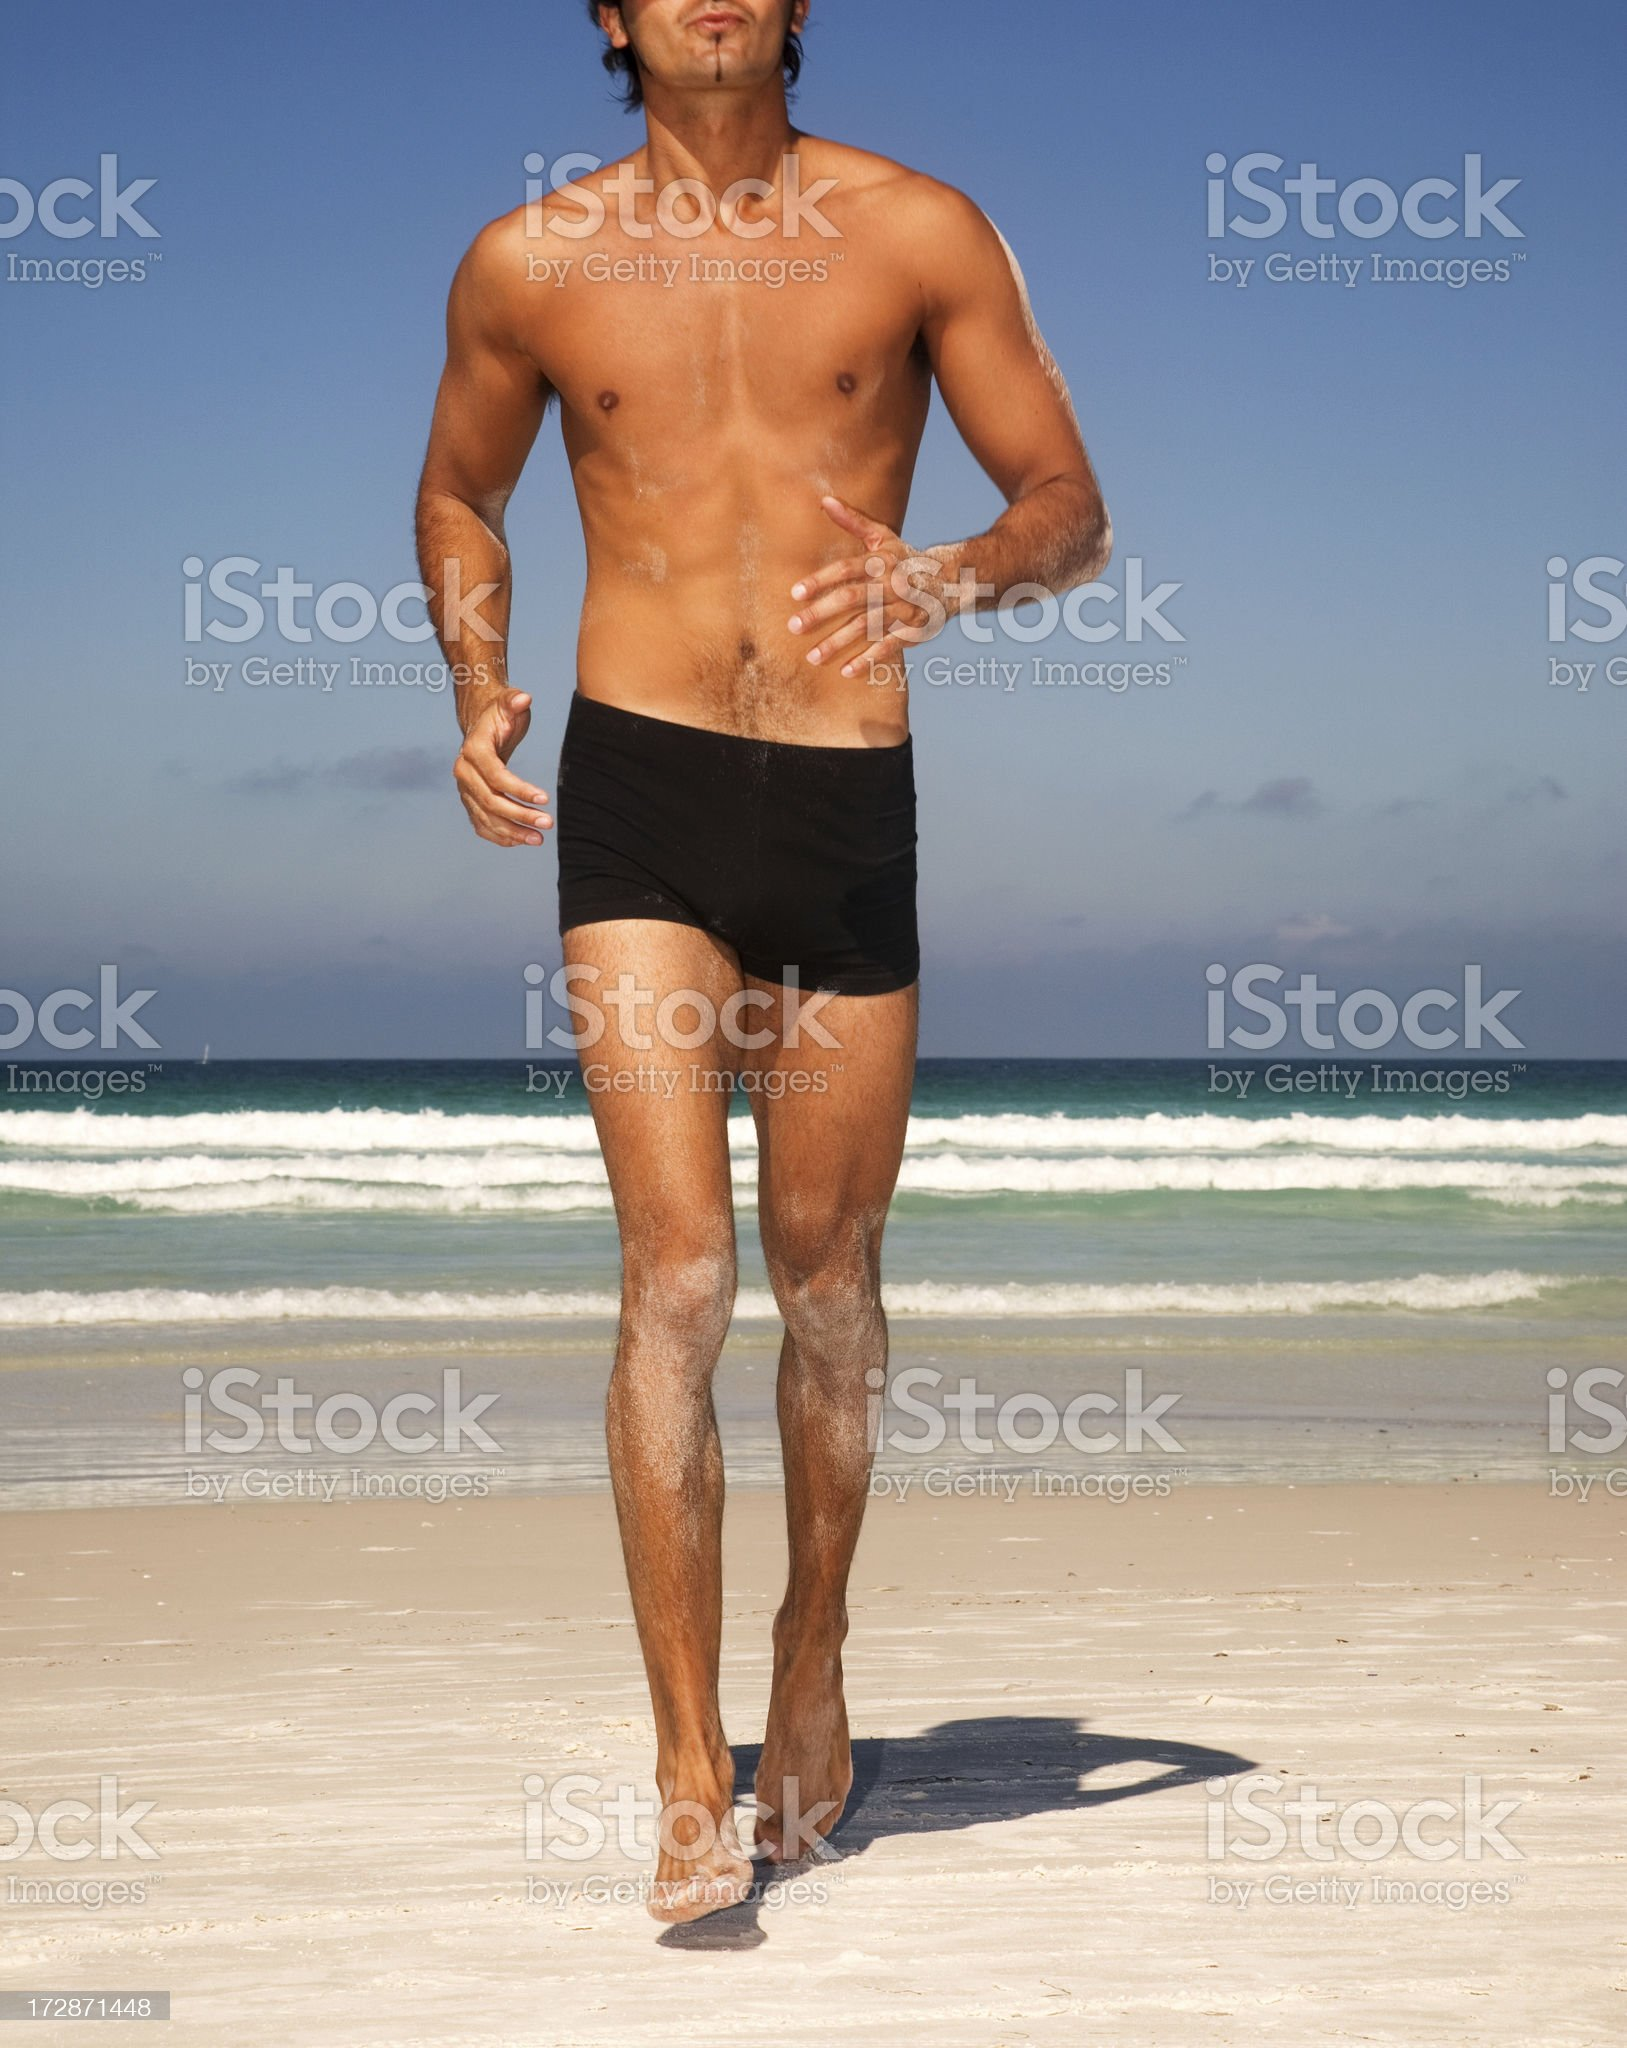 Man Running on the Beach royalty-free stock photo